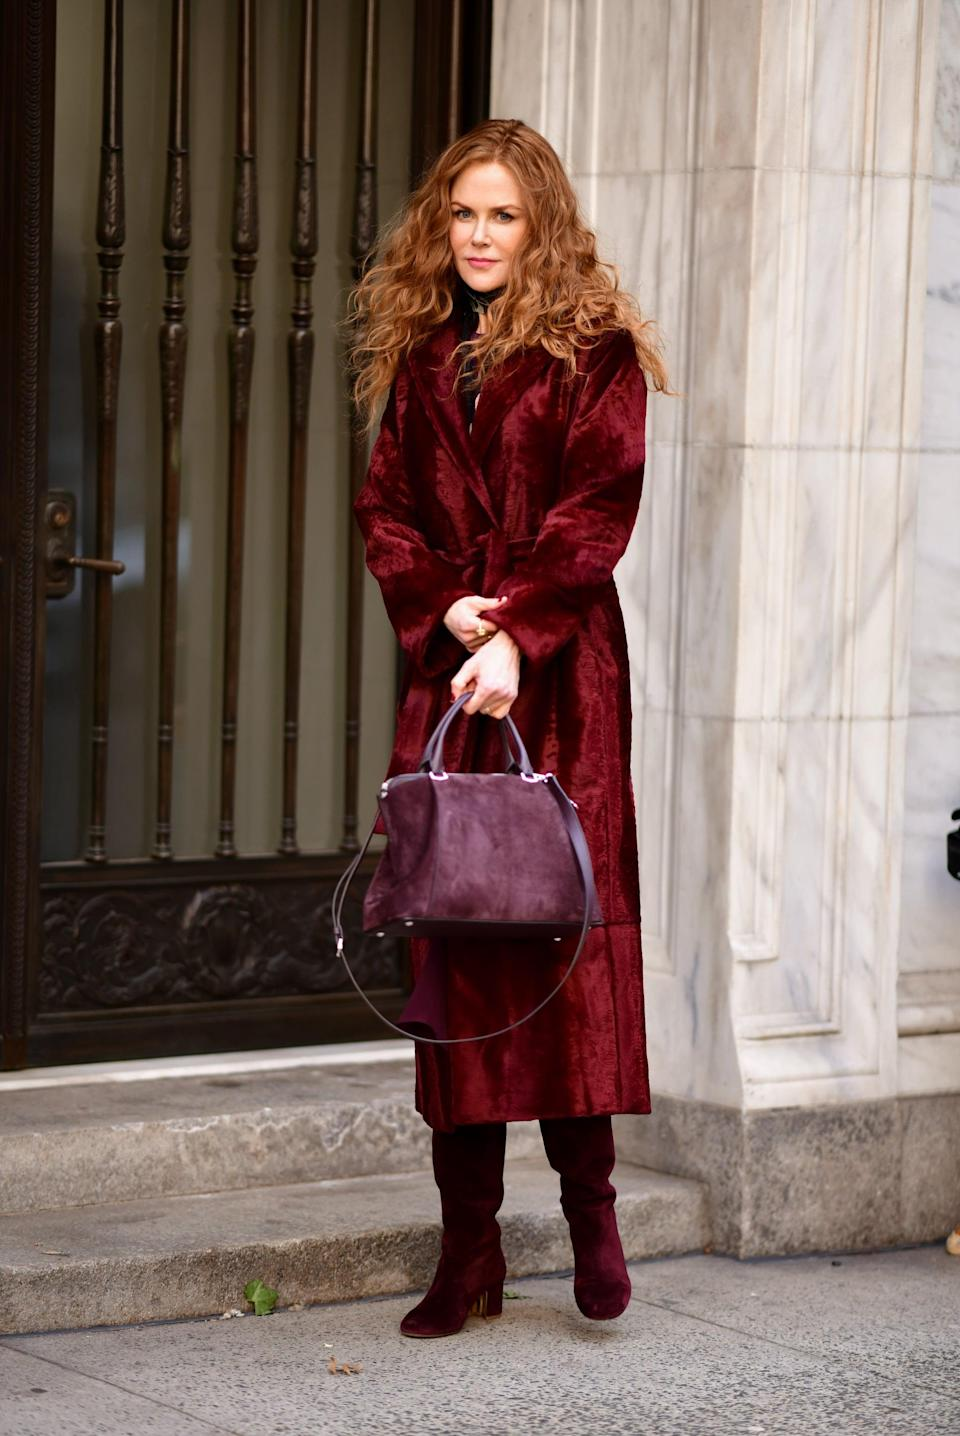 <p>The first coat Grace debuts on <strong>The Undoing</strong> is this red furry-looking number by Max Mara. Signe was drawn to the plush material and wound up purchasing a handful of the coats so she could sew extra fabric on the bottom to make it longer and wider.</p>